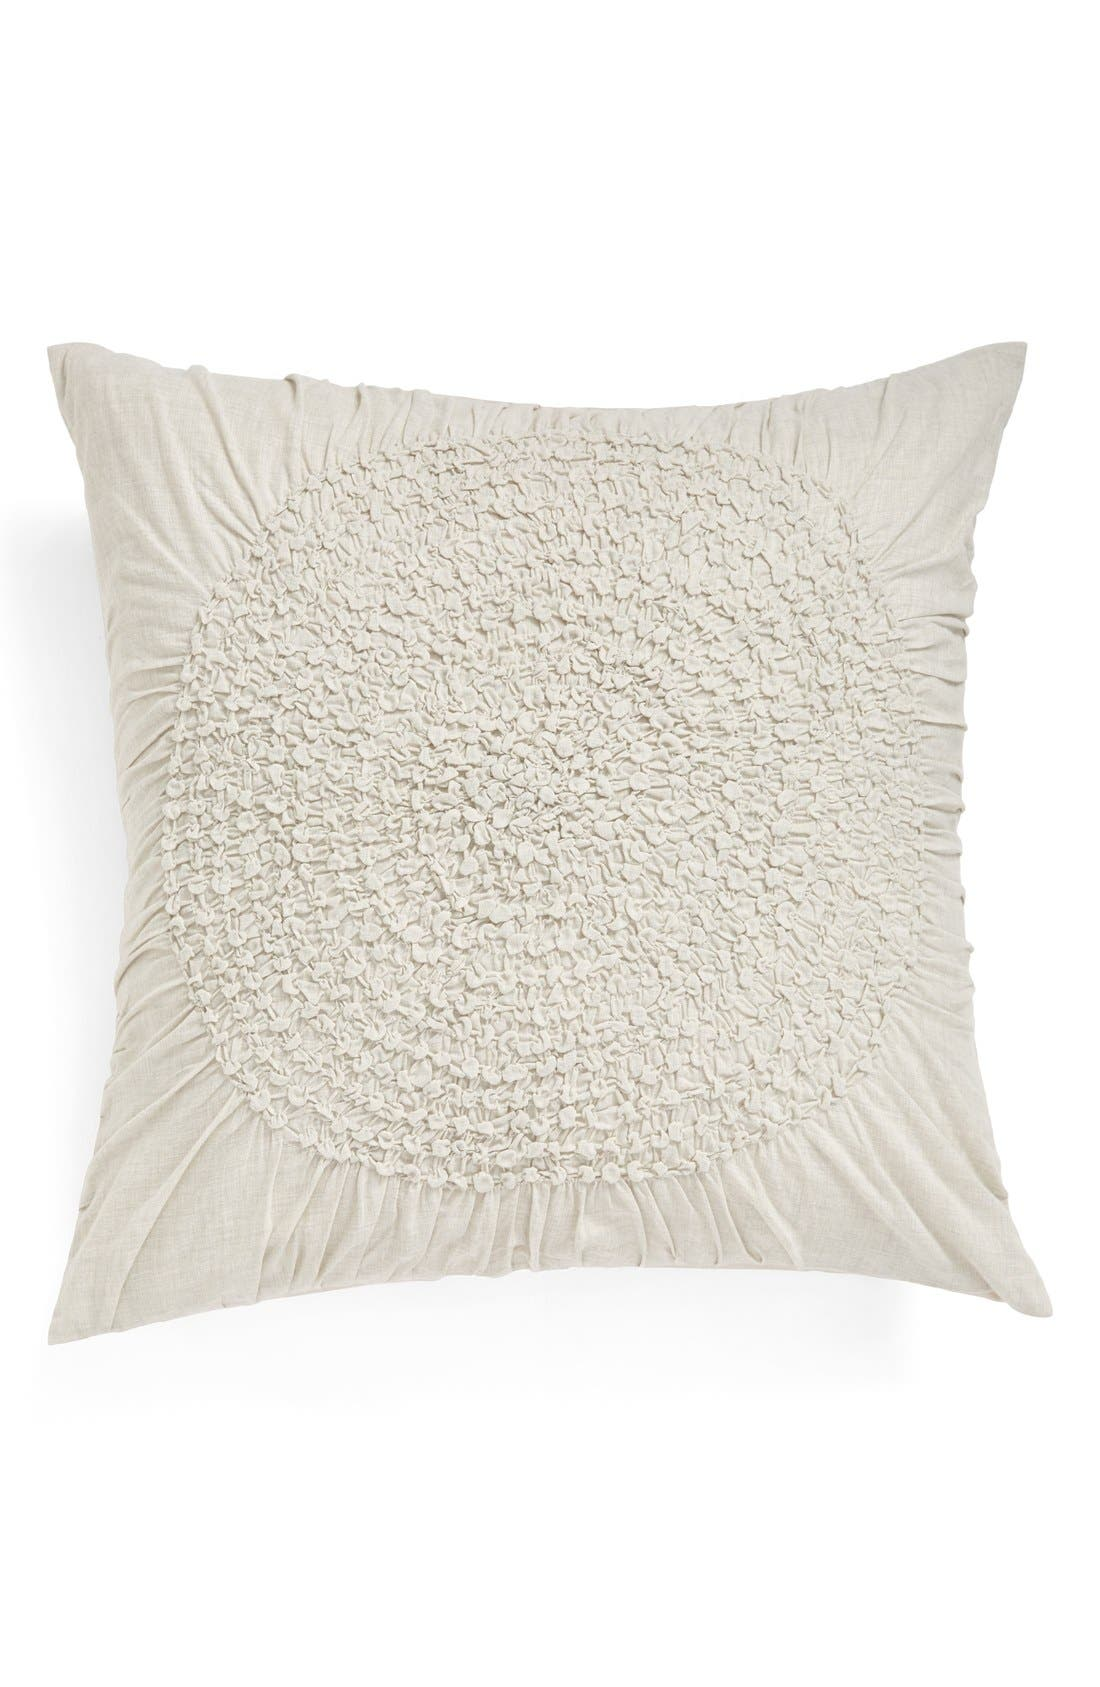 Main Image - Nordstrom at Home 'Chloe' Euro Sham